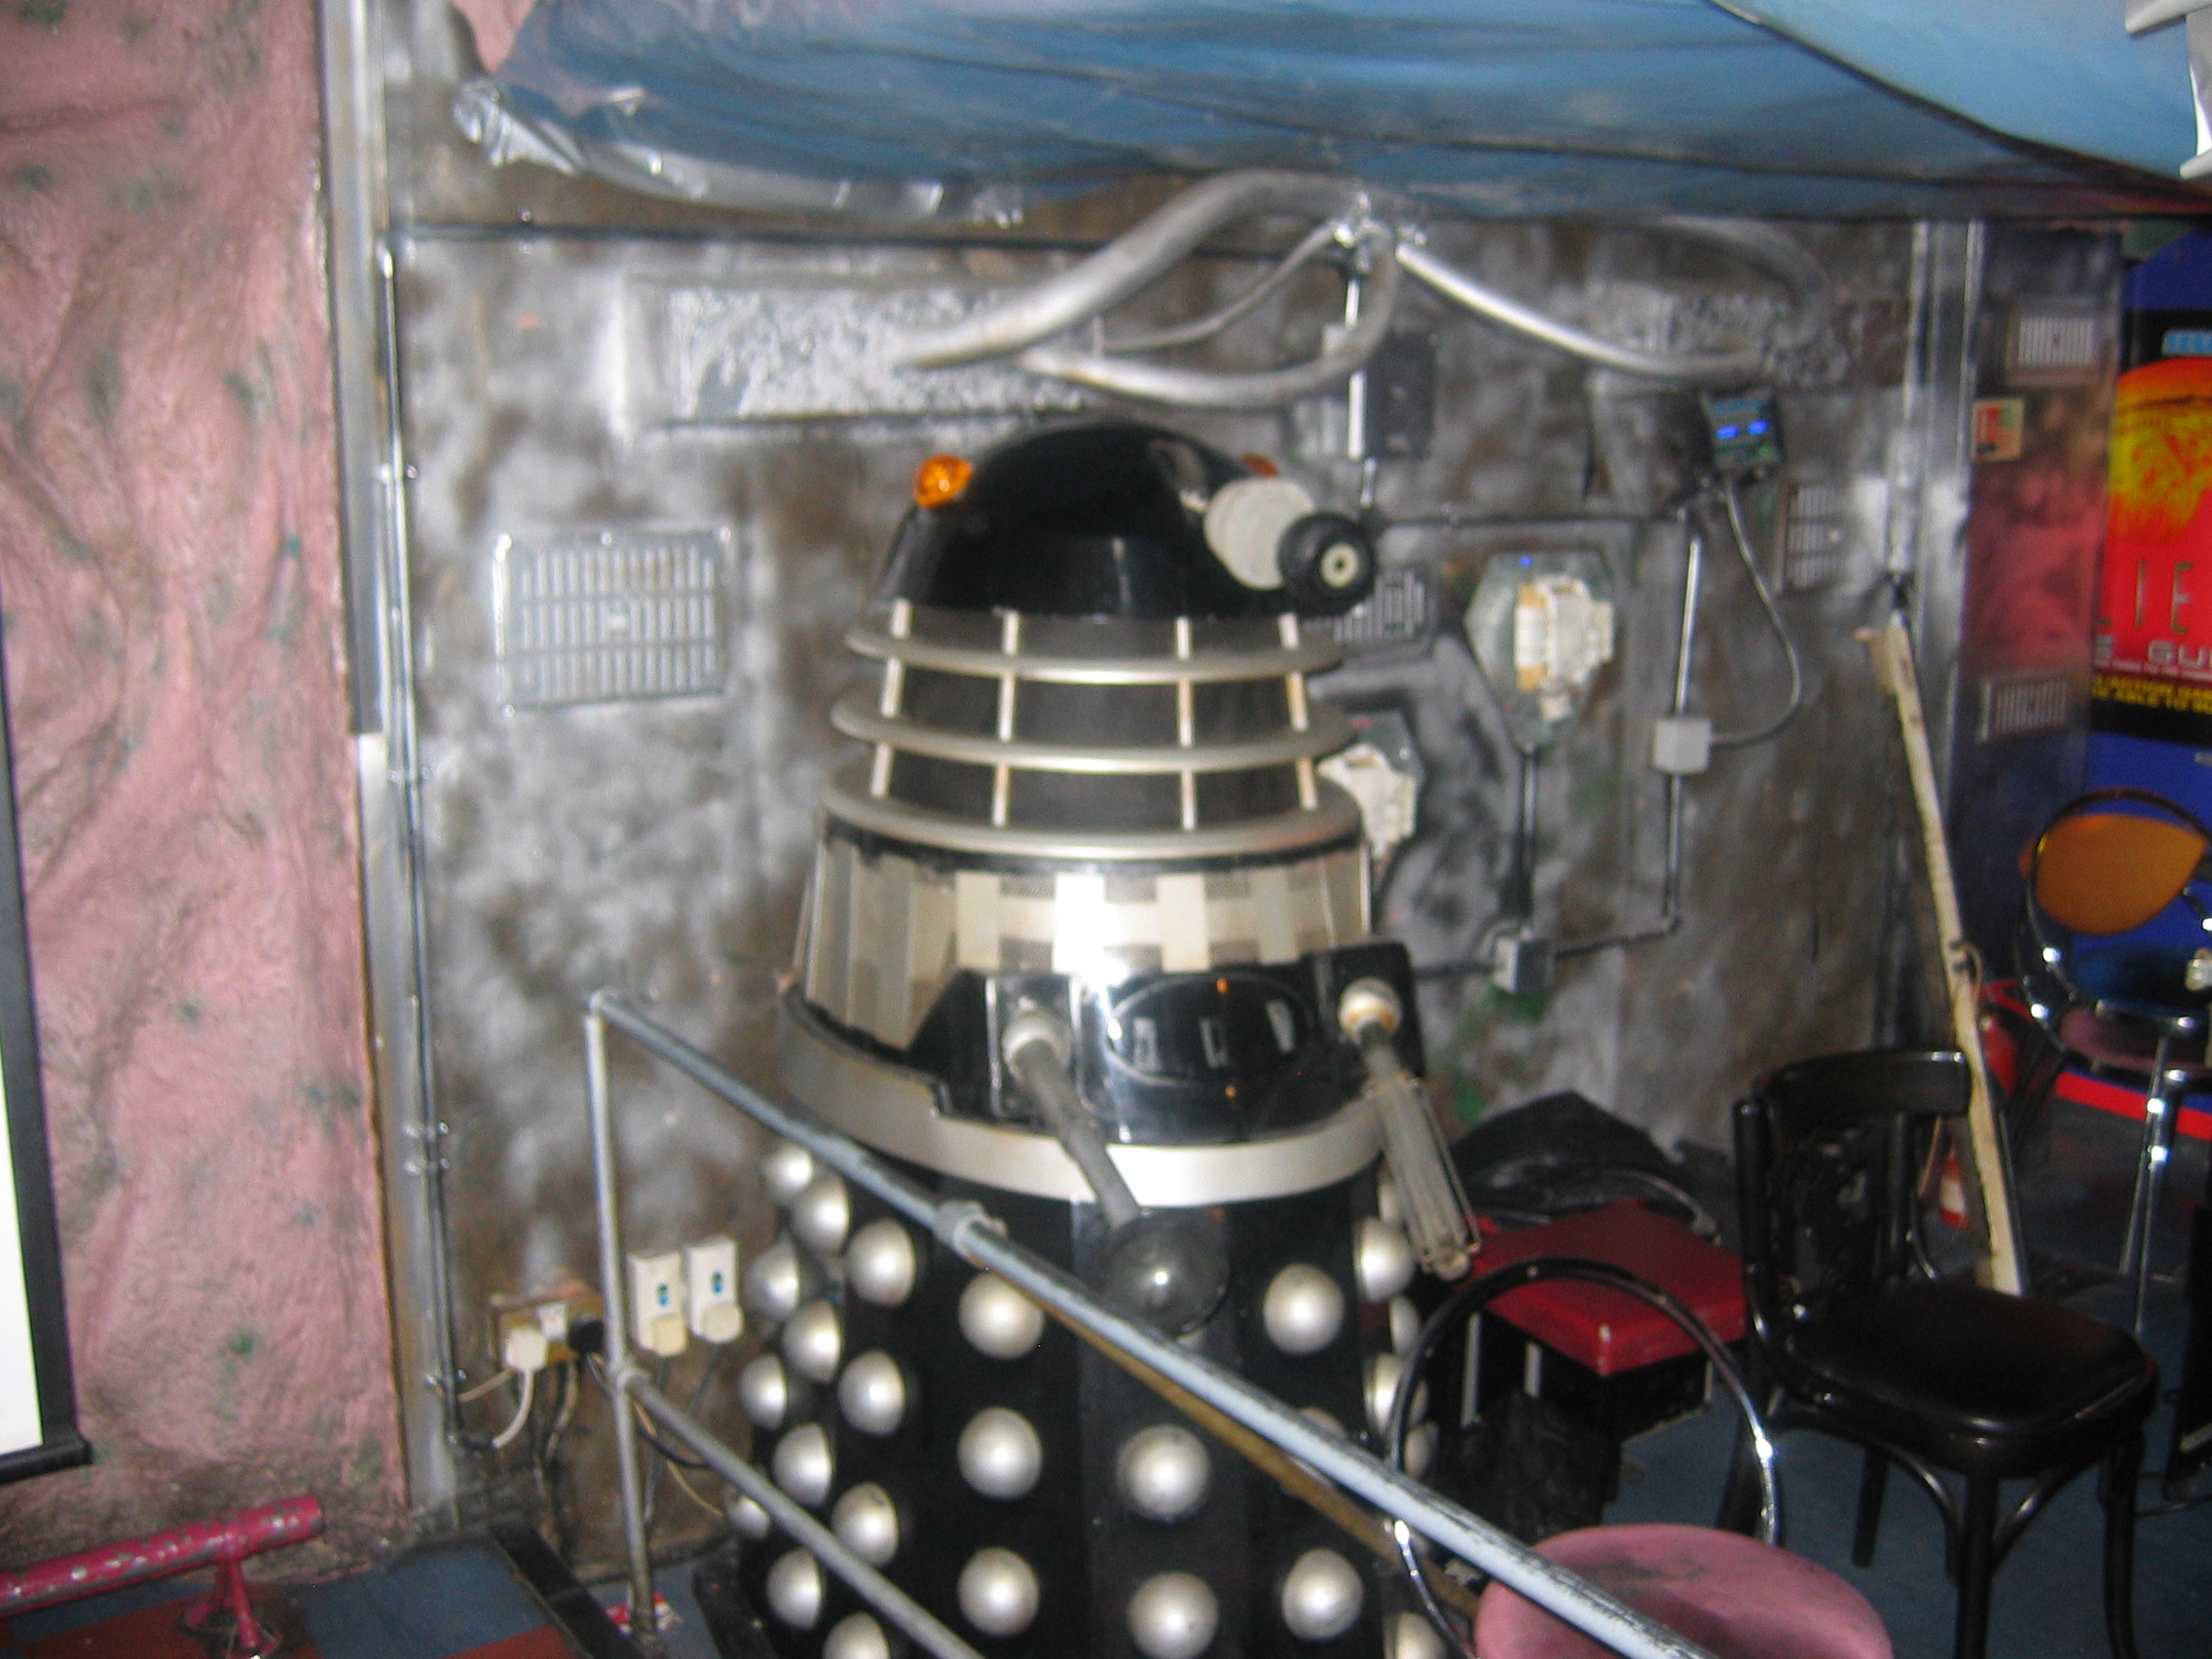 Photo taken by me – Dalek in FAB Café, Manchester